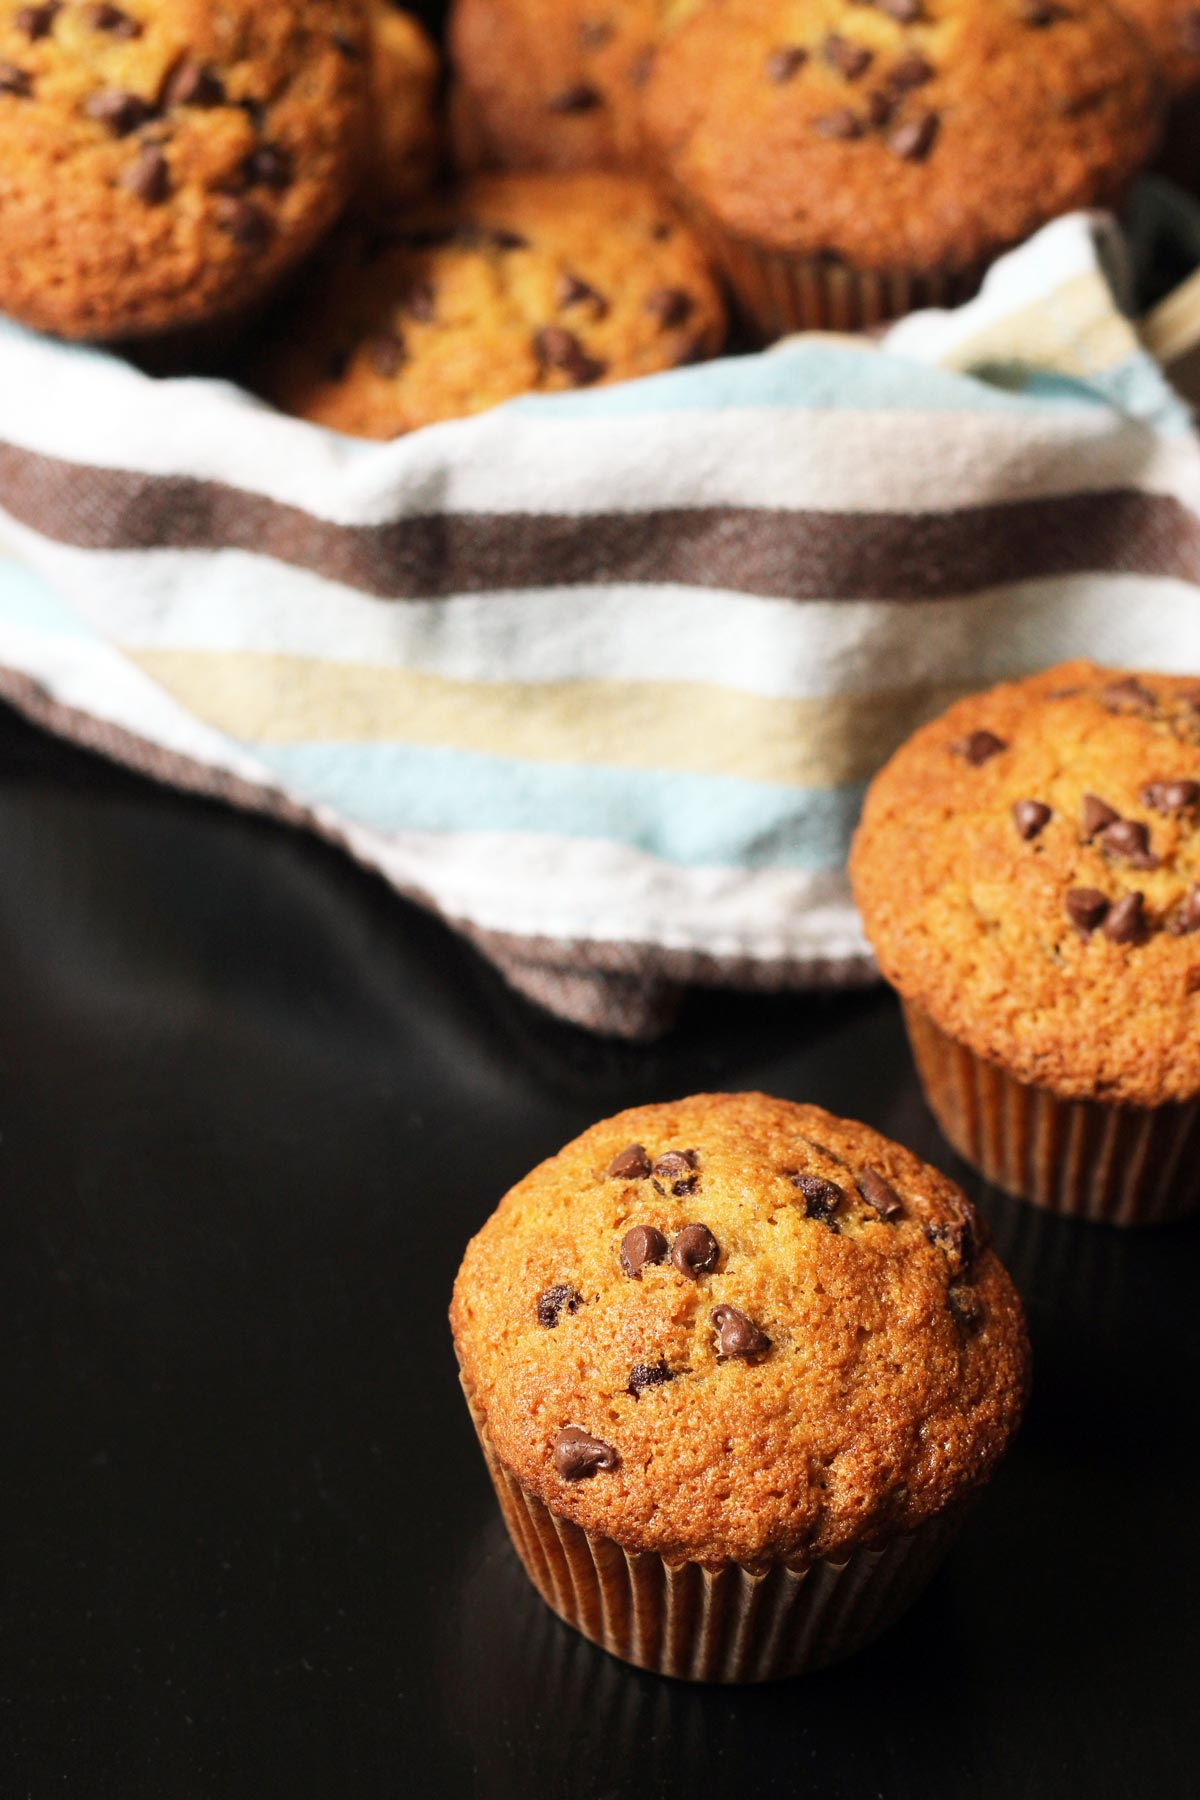 banana muffin on table with basket